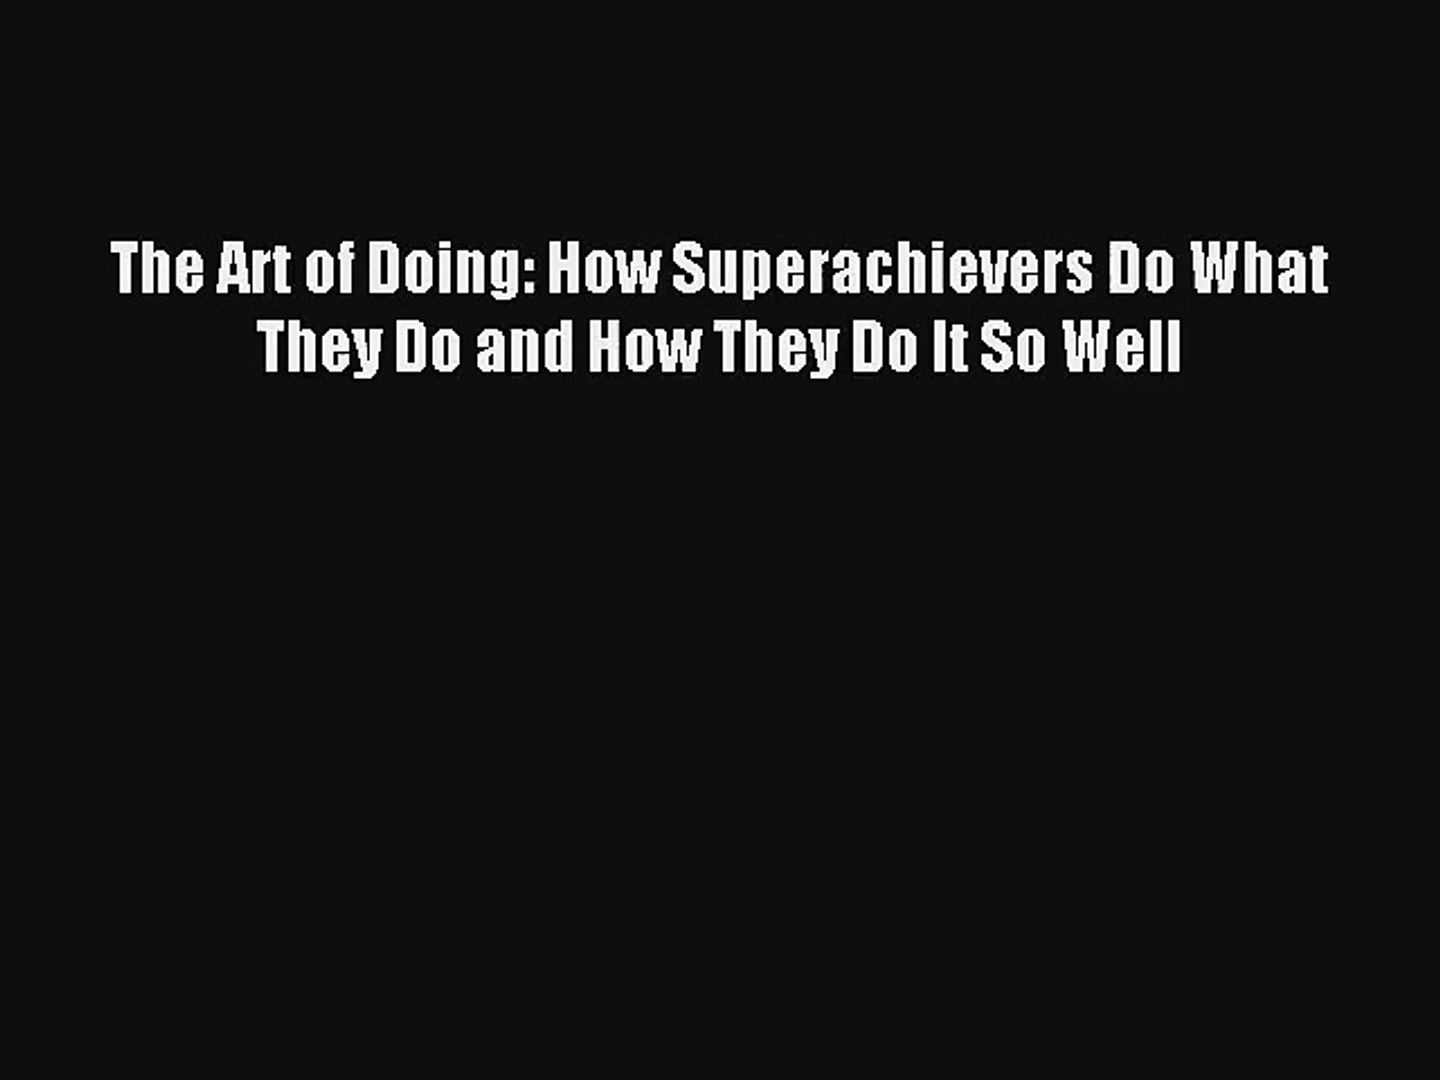 The Art of Doing: How Superachievers Do What They Do and How They Do It So Well [PDF] Full